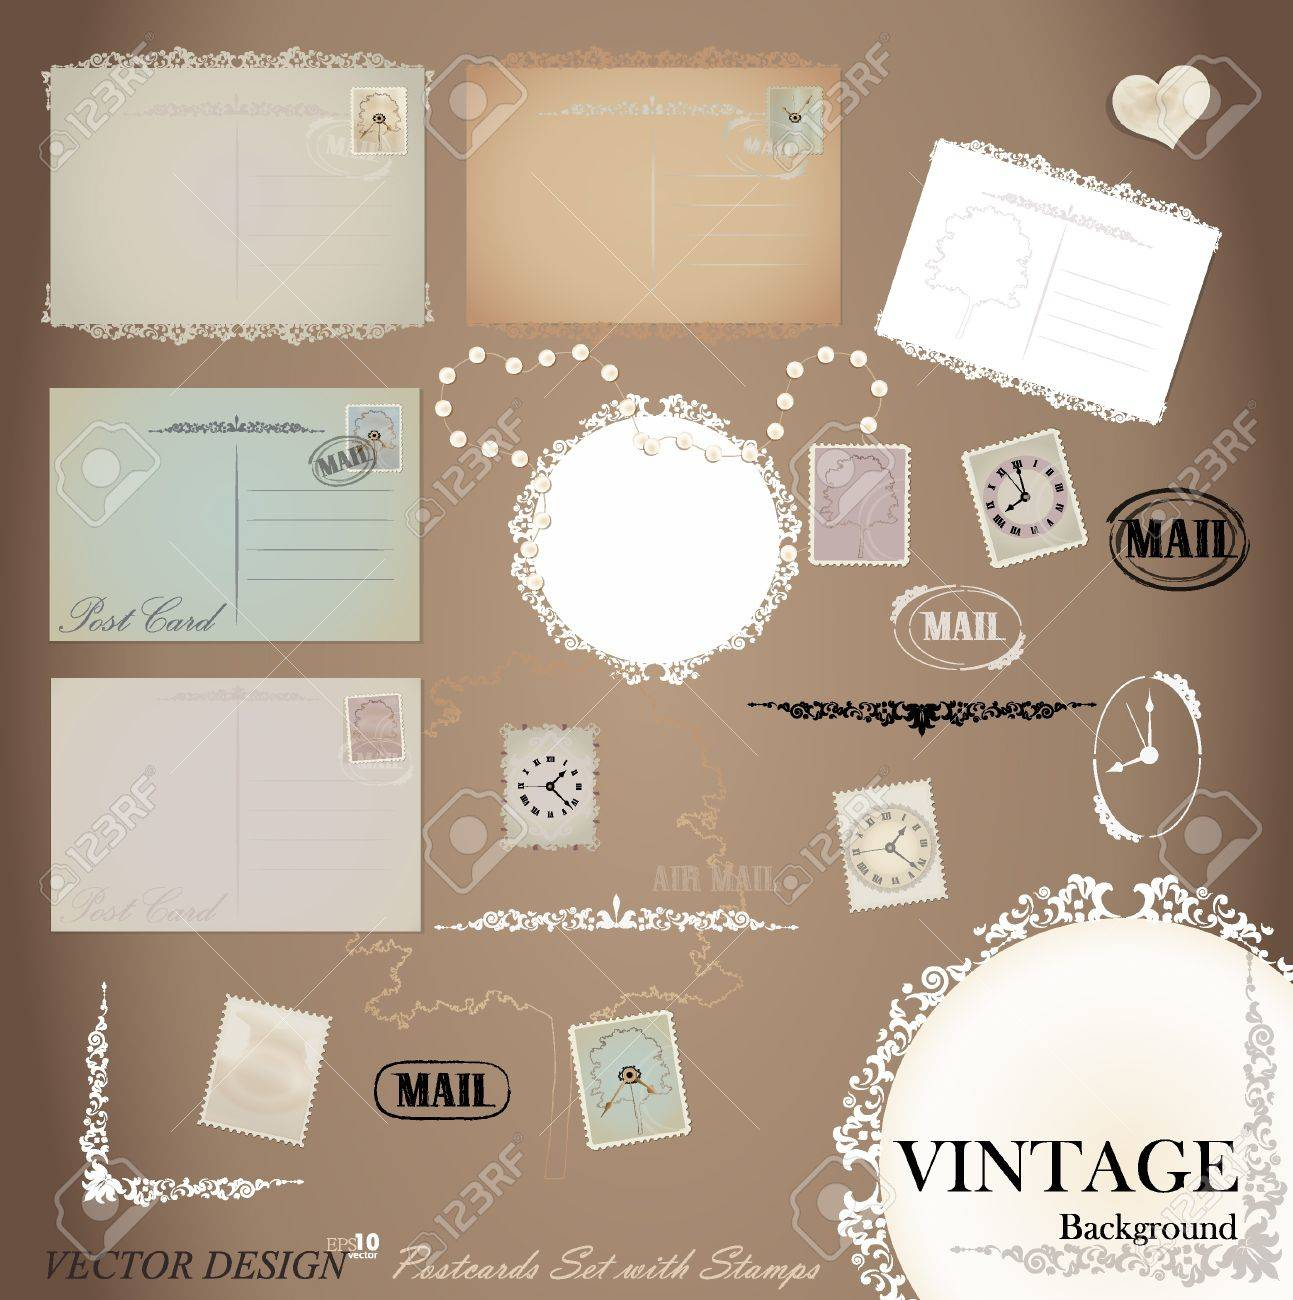 Vector set: Vintage postcard designs and postage stamps. Stock Vector - 14238355